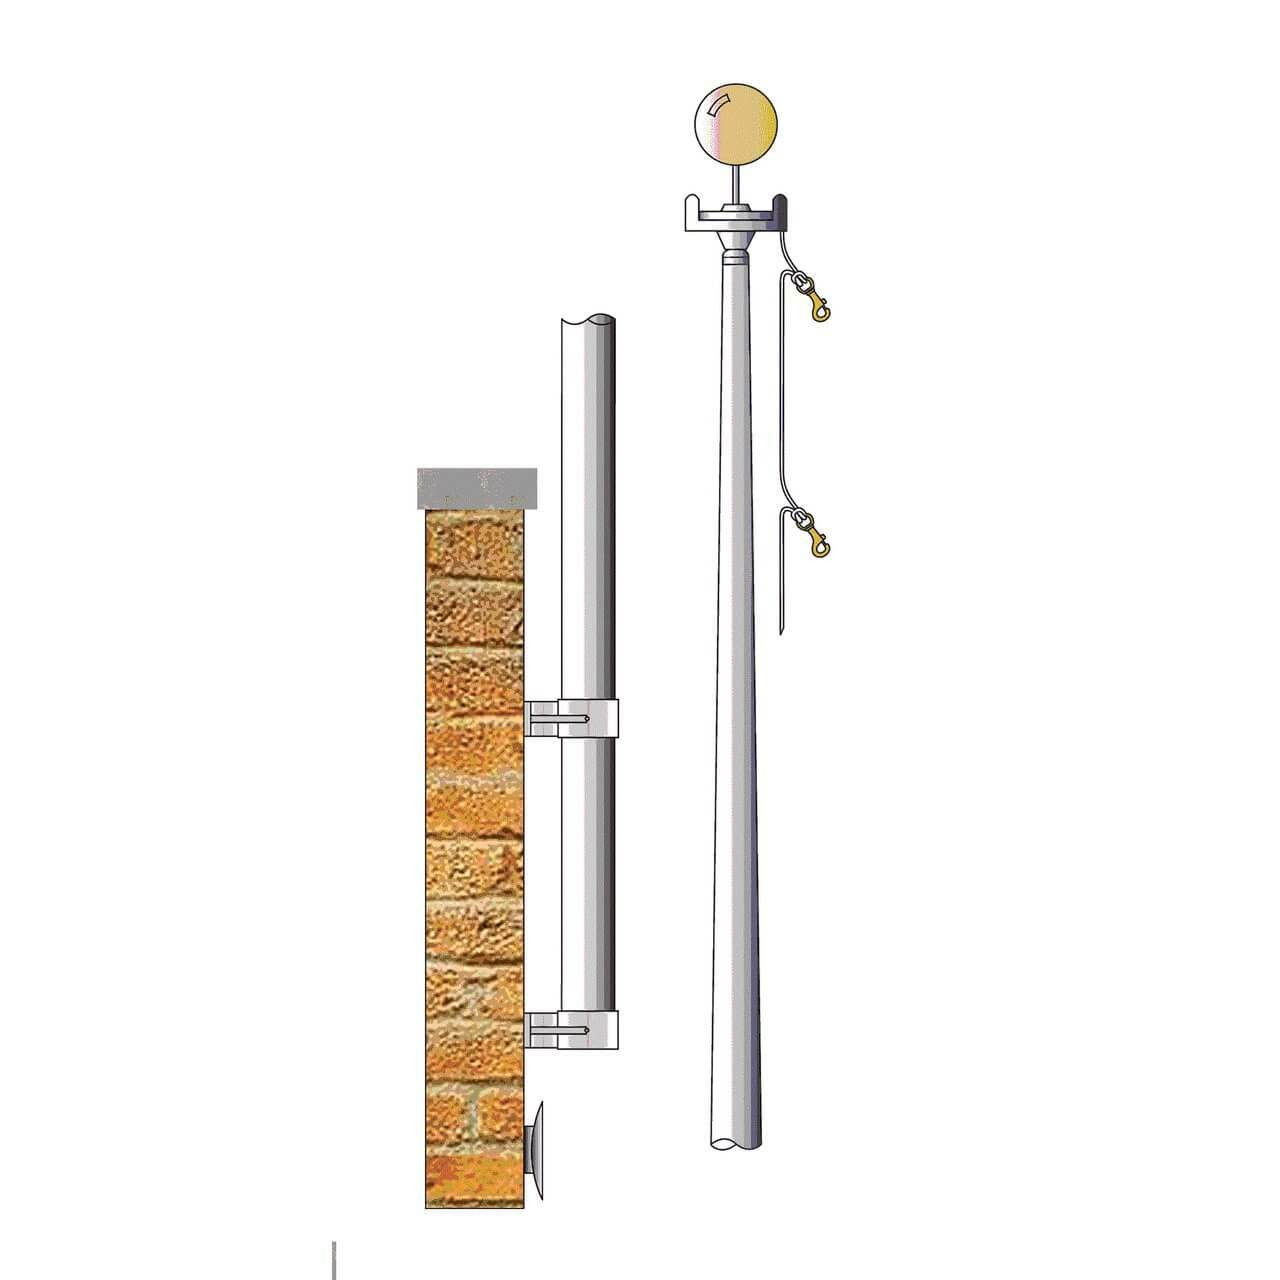 20' Vertical Wall Mounted Flagpole LVW20 illustration on brick wall